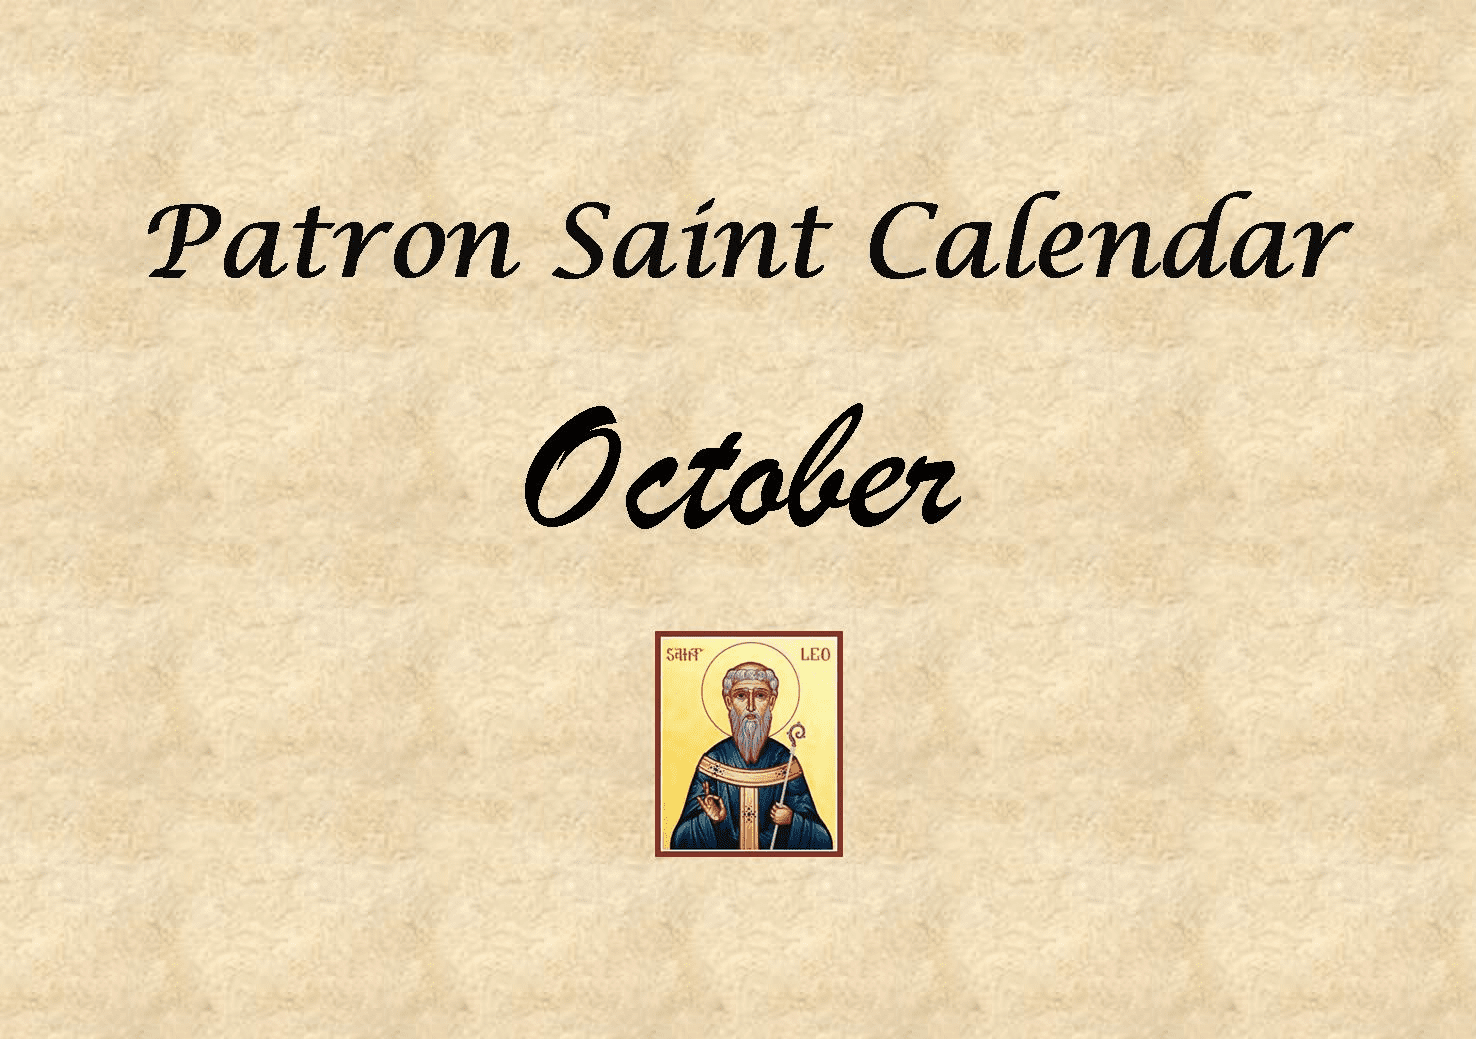 Patron Saint Memorial Feast Day for the Month of October